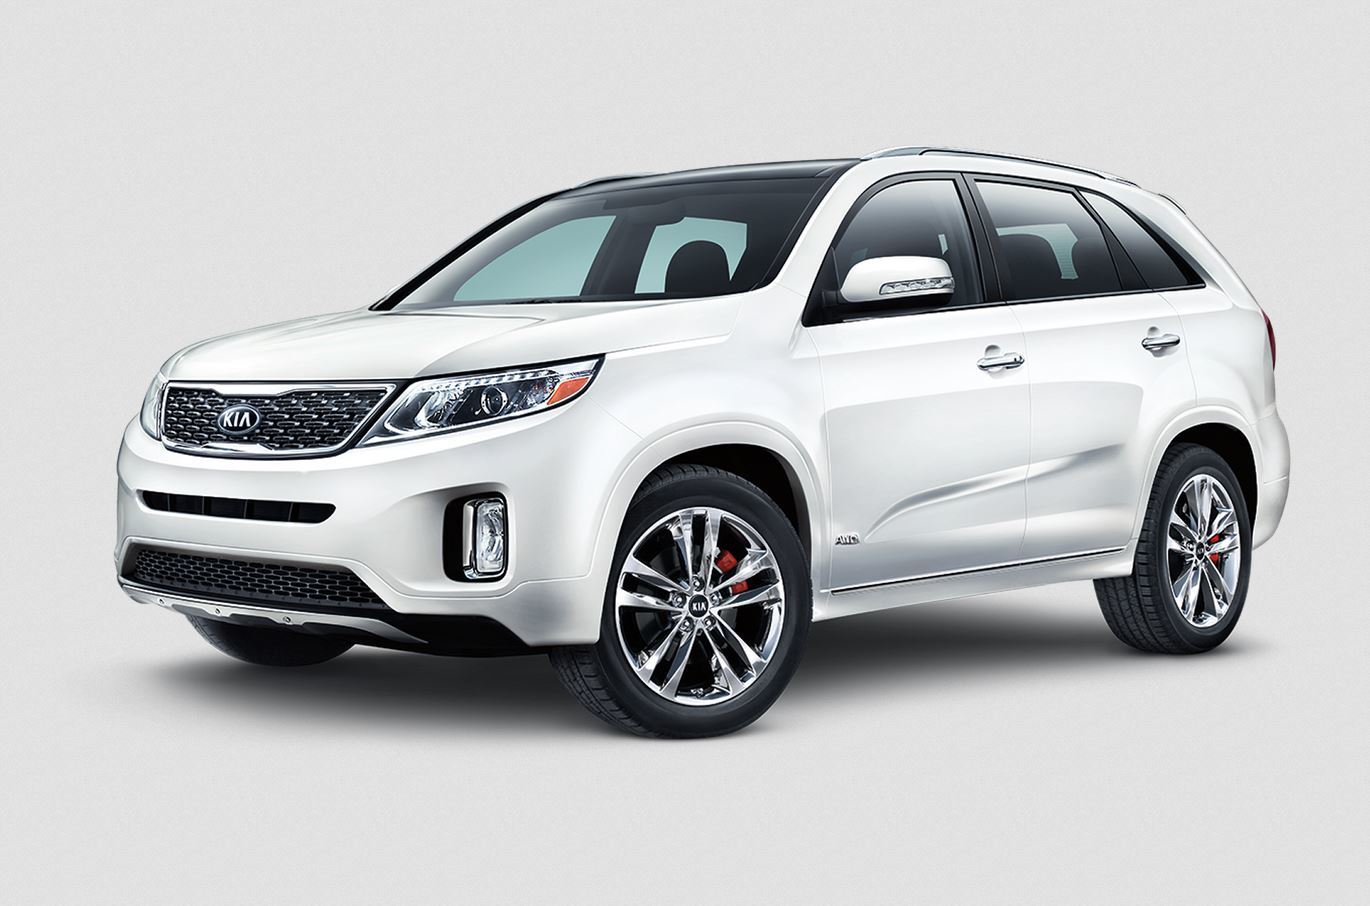 2015 Kia Sorento for Sale in Kirkland at Lee Johnson Kia